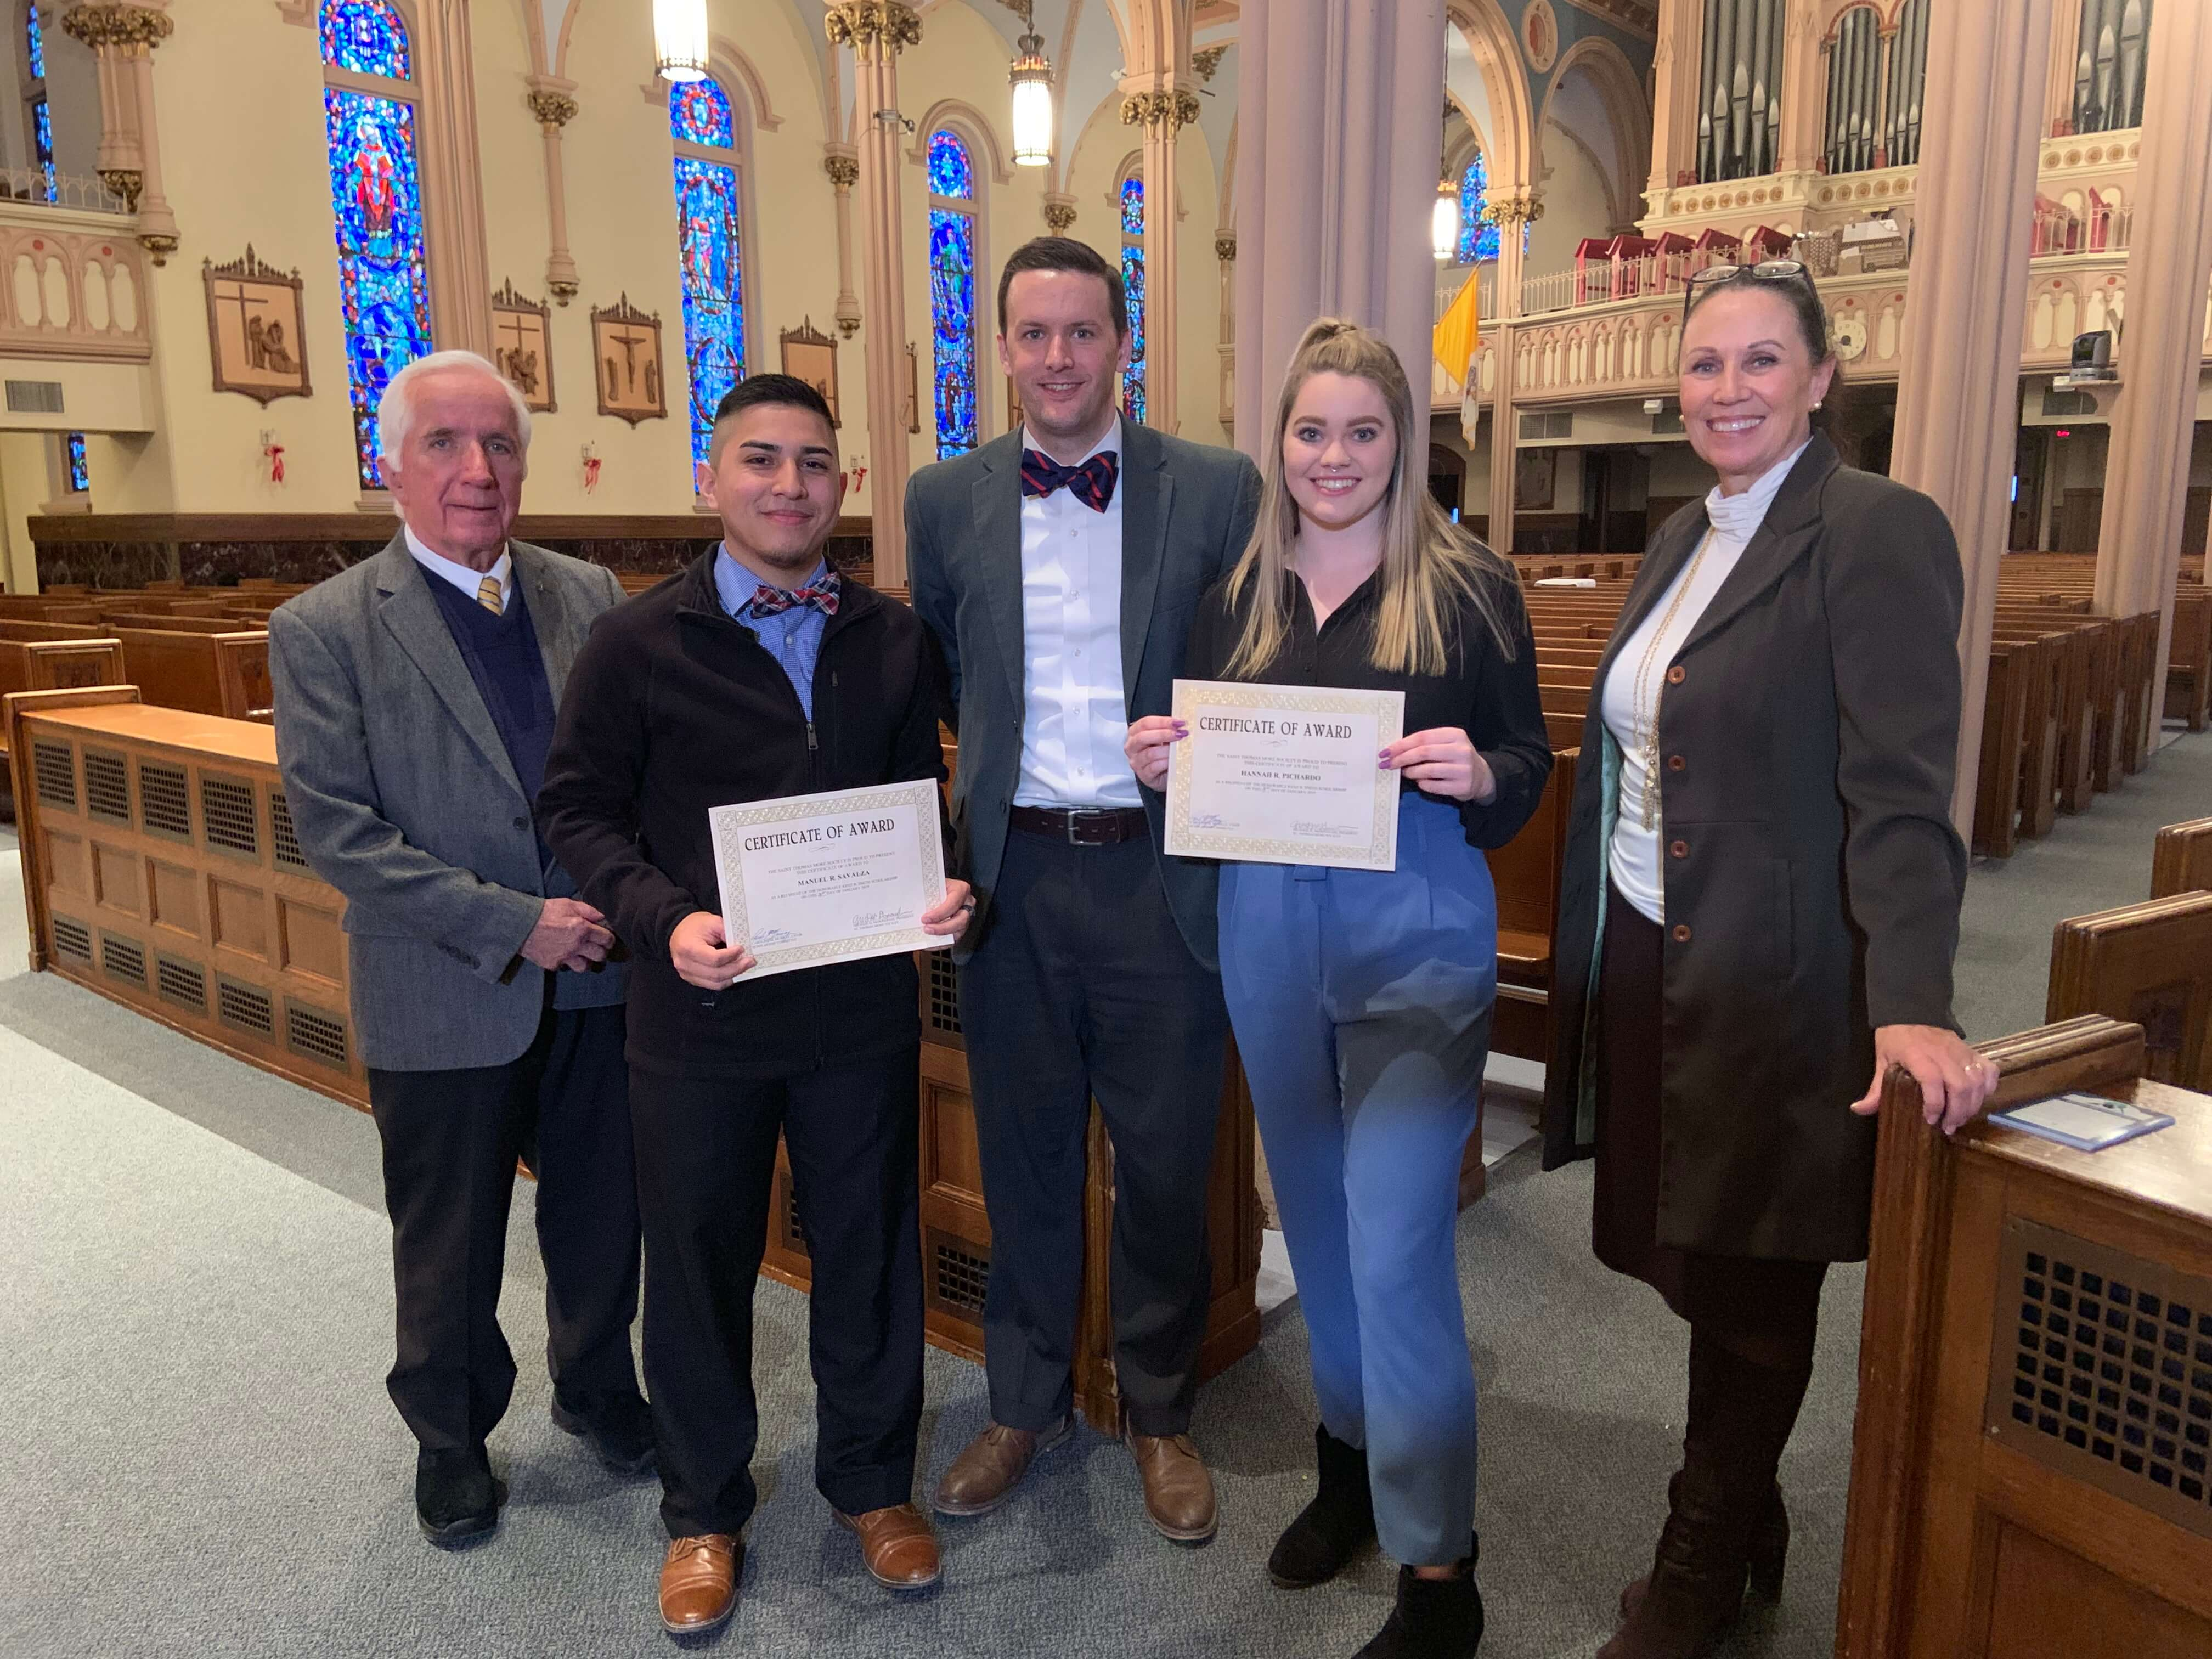 Photo of 2019 St. Thomas More Scholarship Recipients Hannah Pichardo '21 and Manuel Savalza '21 . Courtesy of Sharon Roulier and iObserve